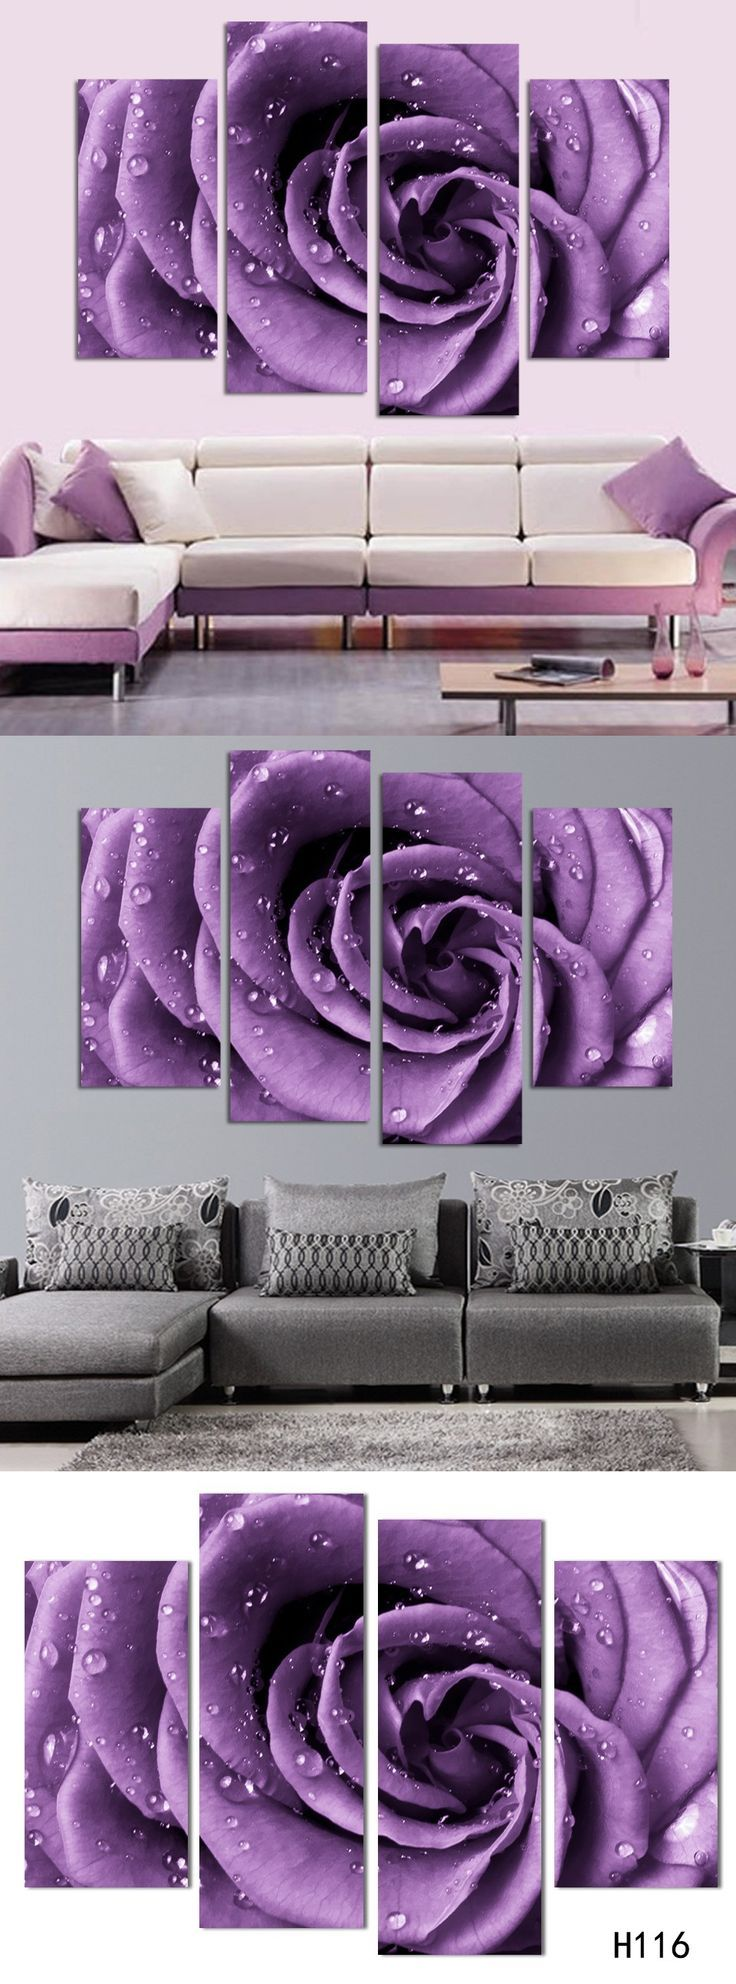 3 piece wall art white purple lover flower big perfect canvas wall 3 piece wall art white purple lover flower big perfect canvas wall art on canvas picture modern picture home decor amipublicfo Image collections